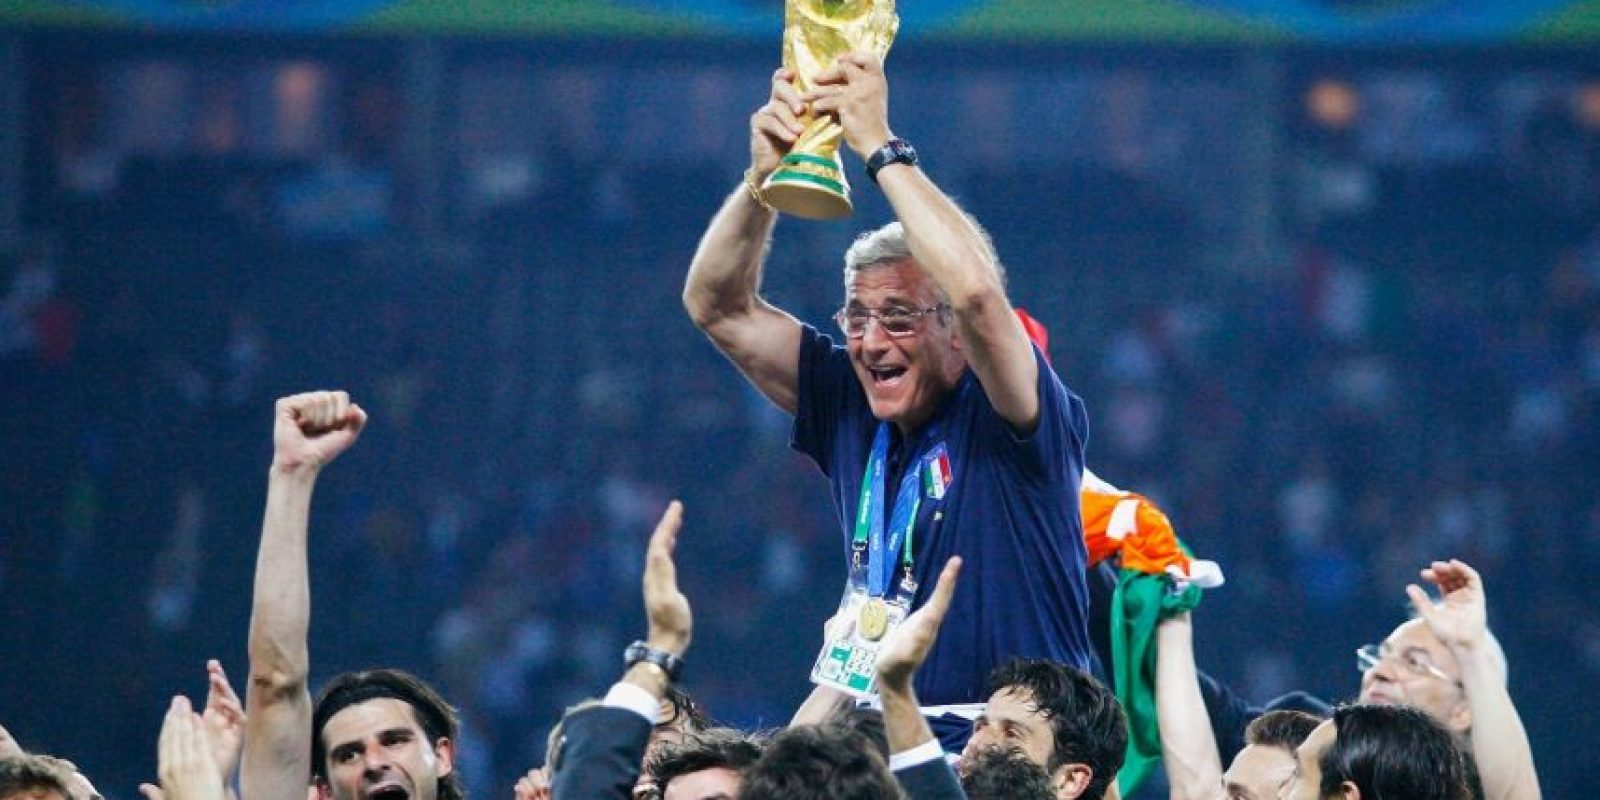 12.-Marcello Lippi (20 títulos): Ganador del Mundial de Alemania 2006 con Italia, el actual técnico de China comenzó su carrera de éxitos en Juventus, donde ganó cinco Serie A, una Copa de Italia, cuatro Supercopa de Italia, una Champions League, una Supercopa de Europa y una Copa Intercontinental. Foto: Getty Images